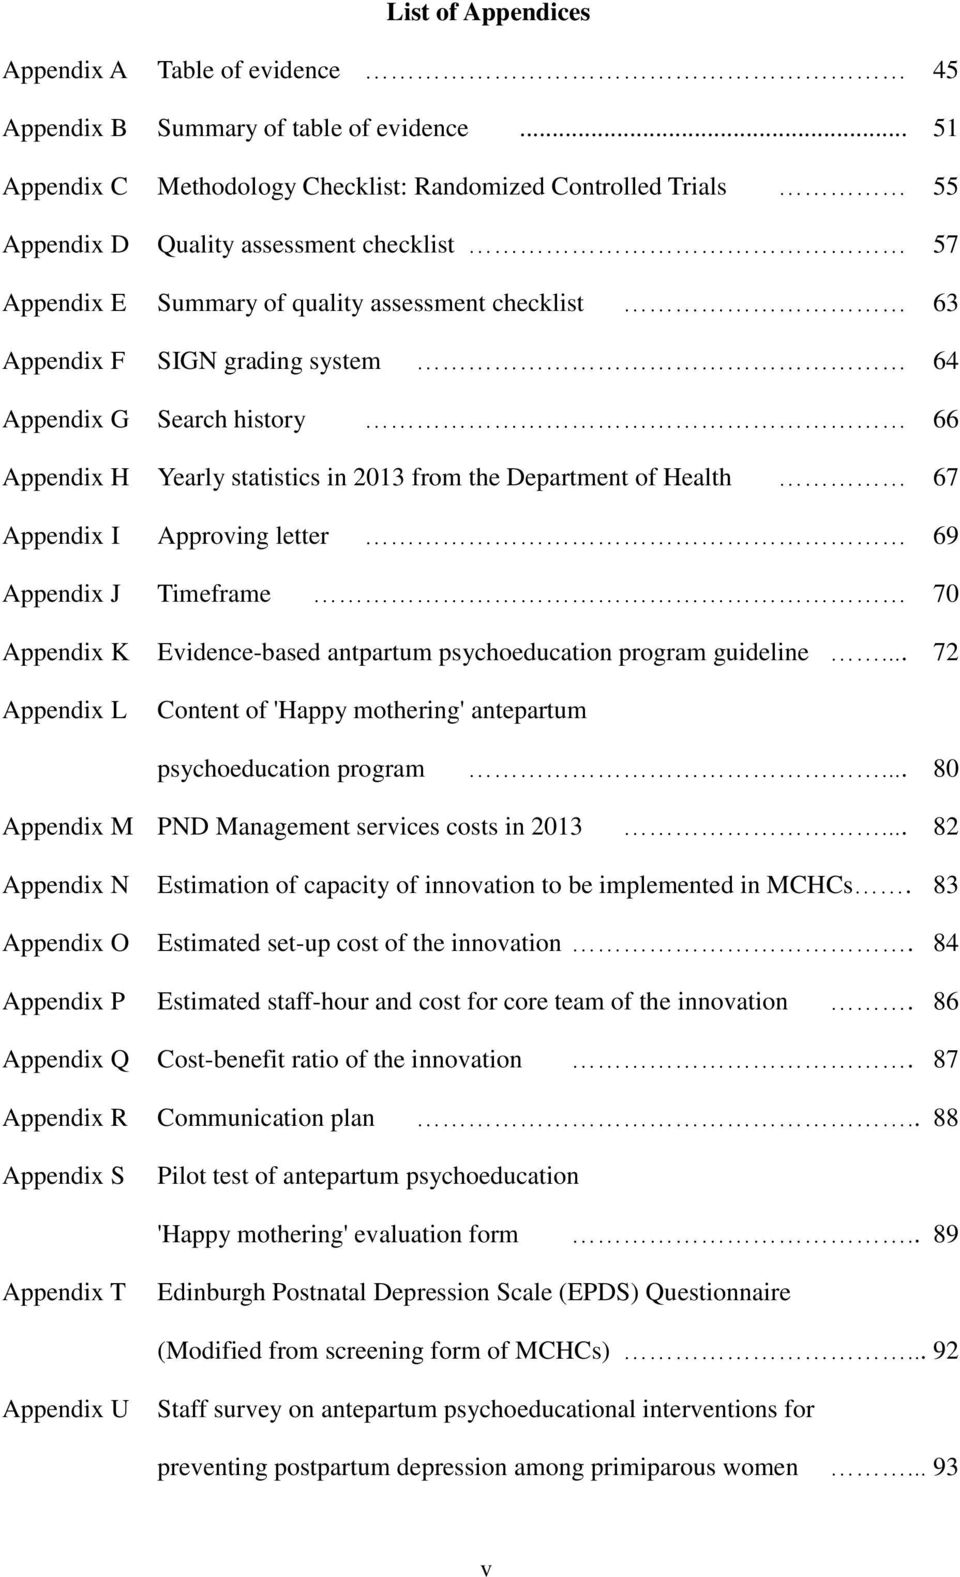 64 Appendix G Search history 66 Appendix H Yearly statistics in 2013 from the Department of Health 67 Appendix I Approving letter 69 Appendix J Timeframe 70 Appendix K Evidence-based antpartum